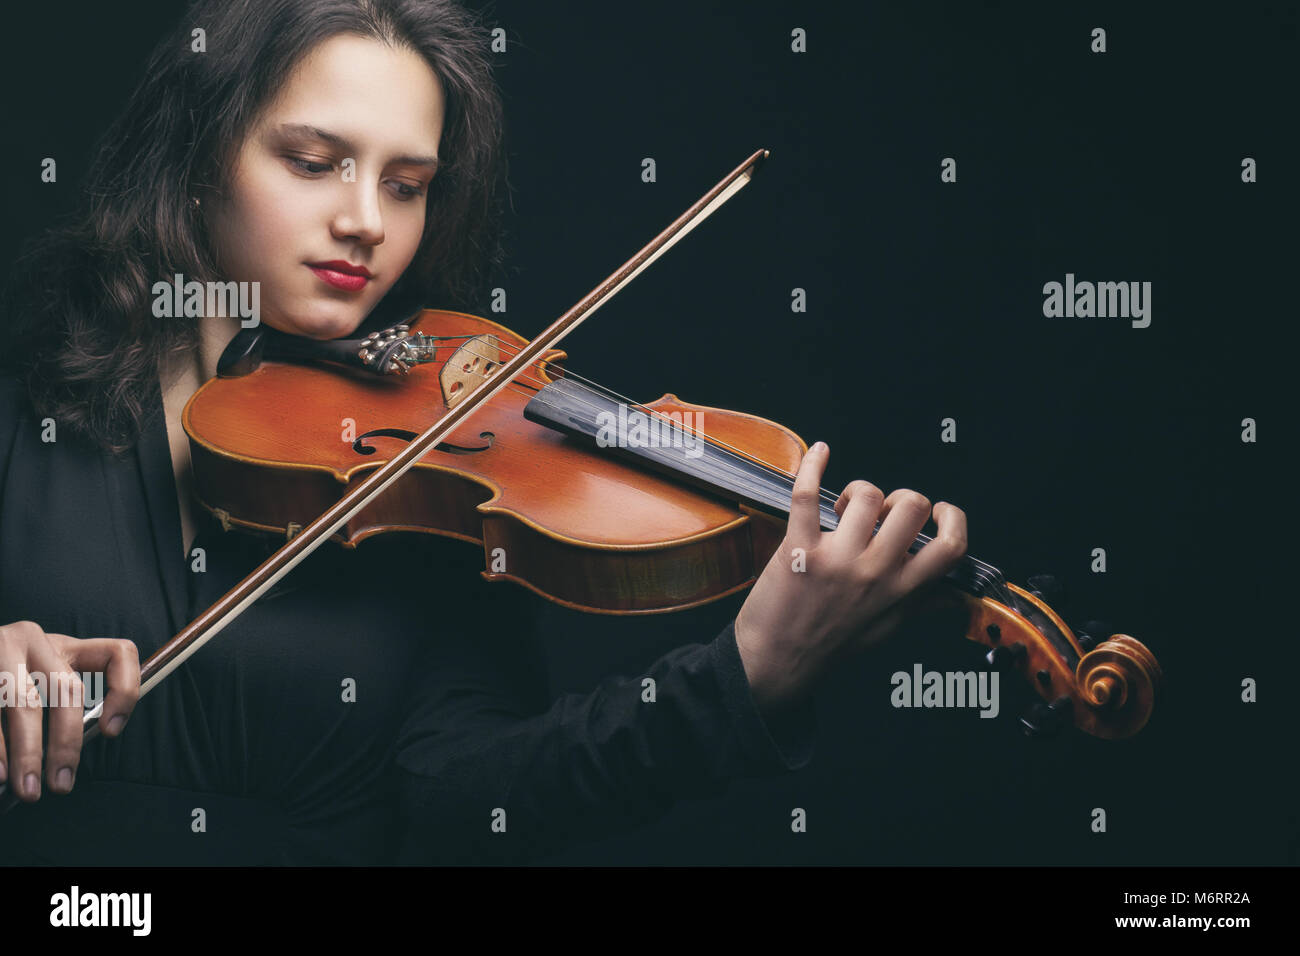 Beautiful young woman playing the violin on dark background - Stock Image